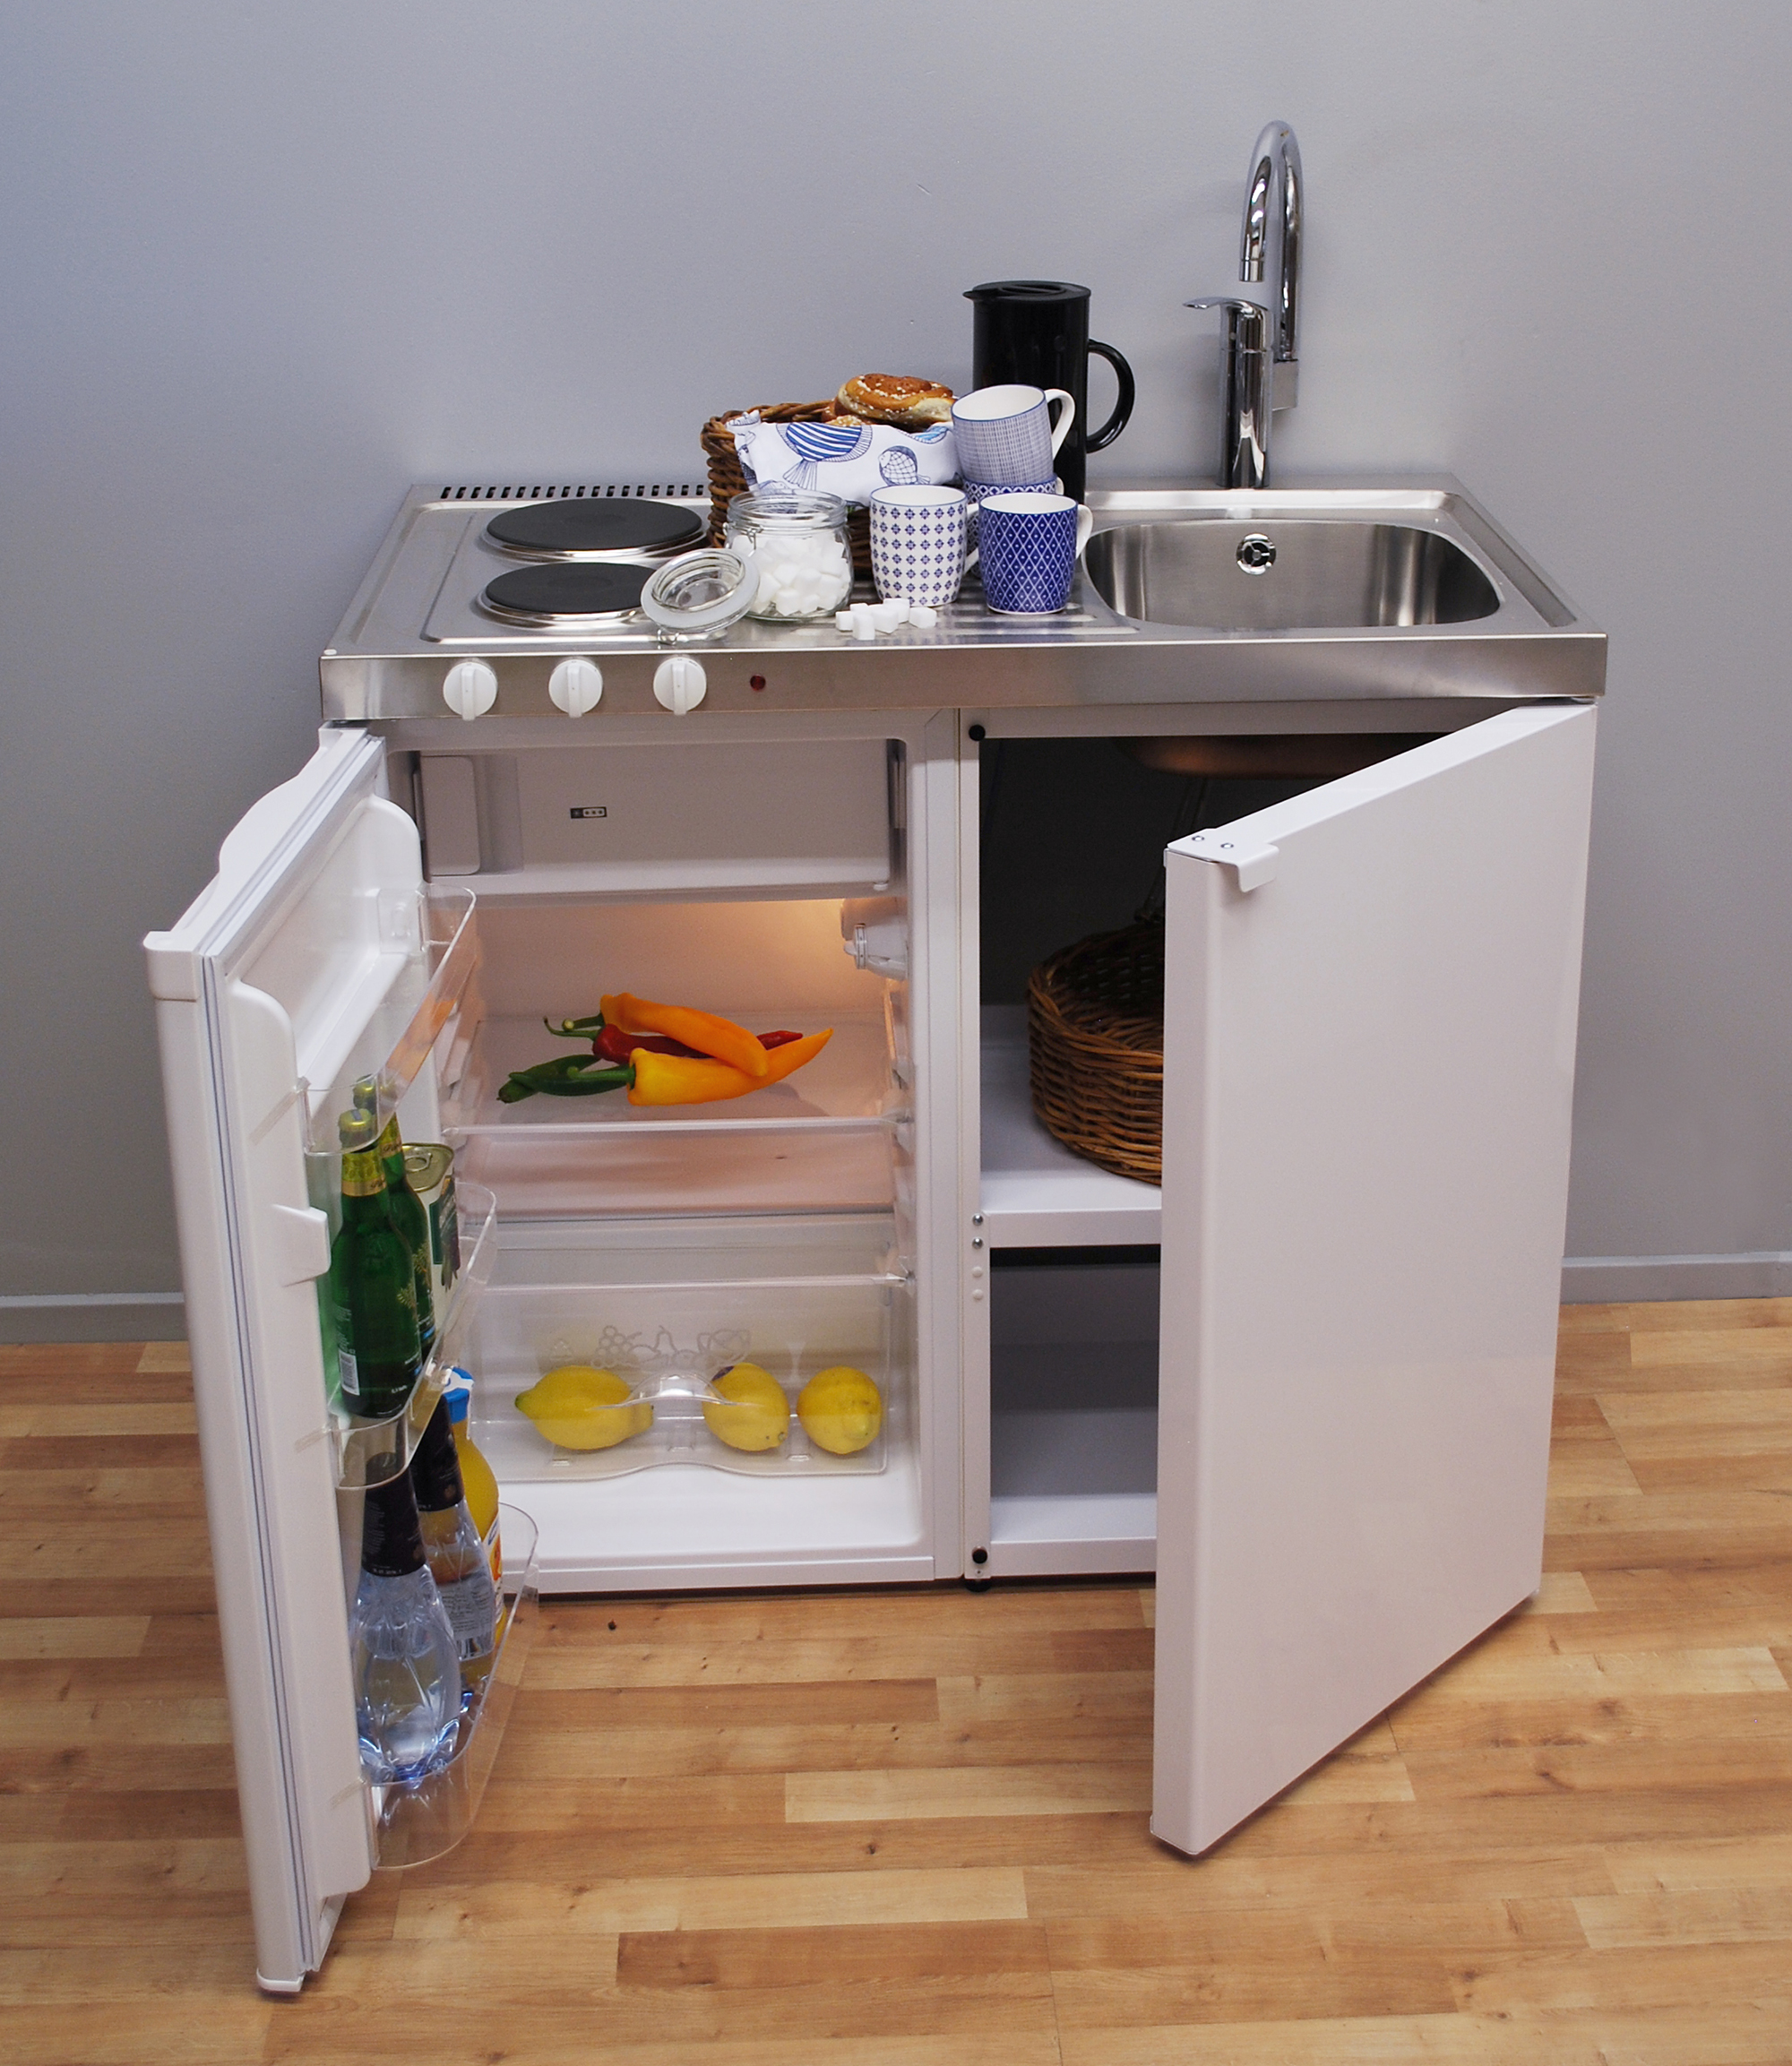 John strand mini kitchen our standard mini kitchen for Compact kitchens for small spaces